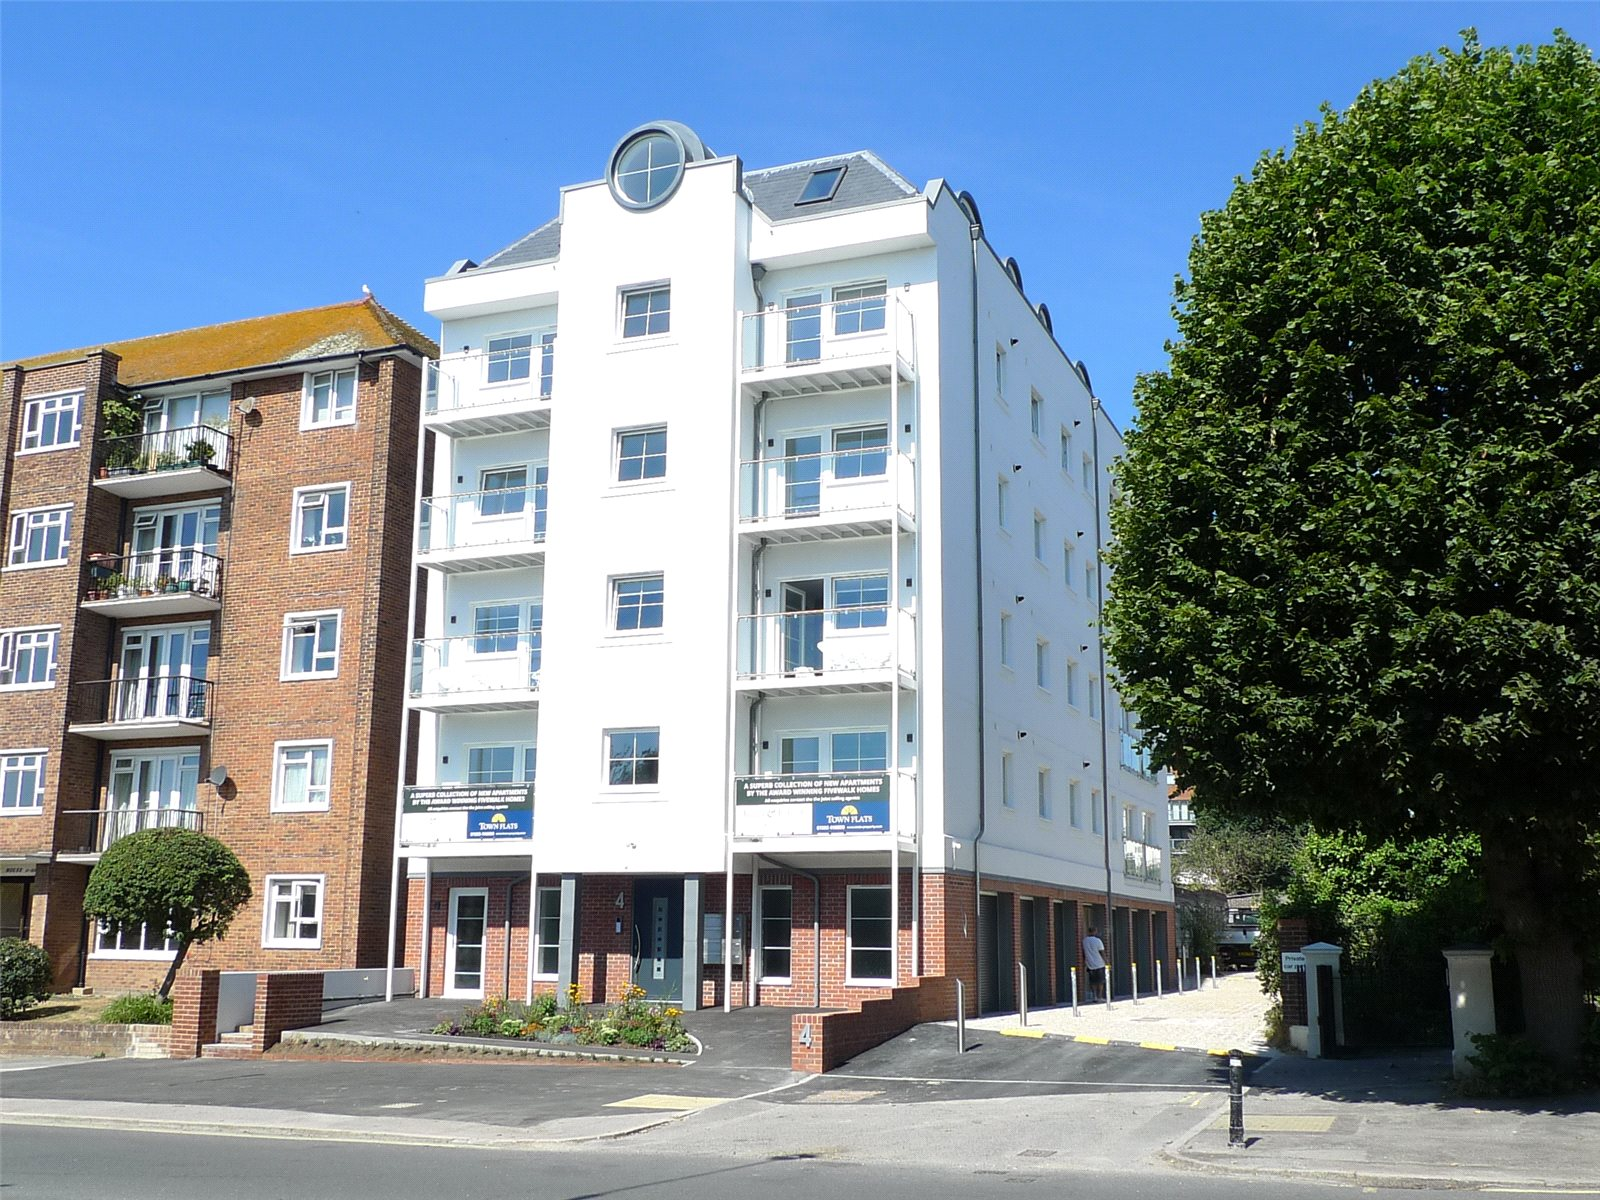 Apartment 4 The Avenue, Eastbourne